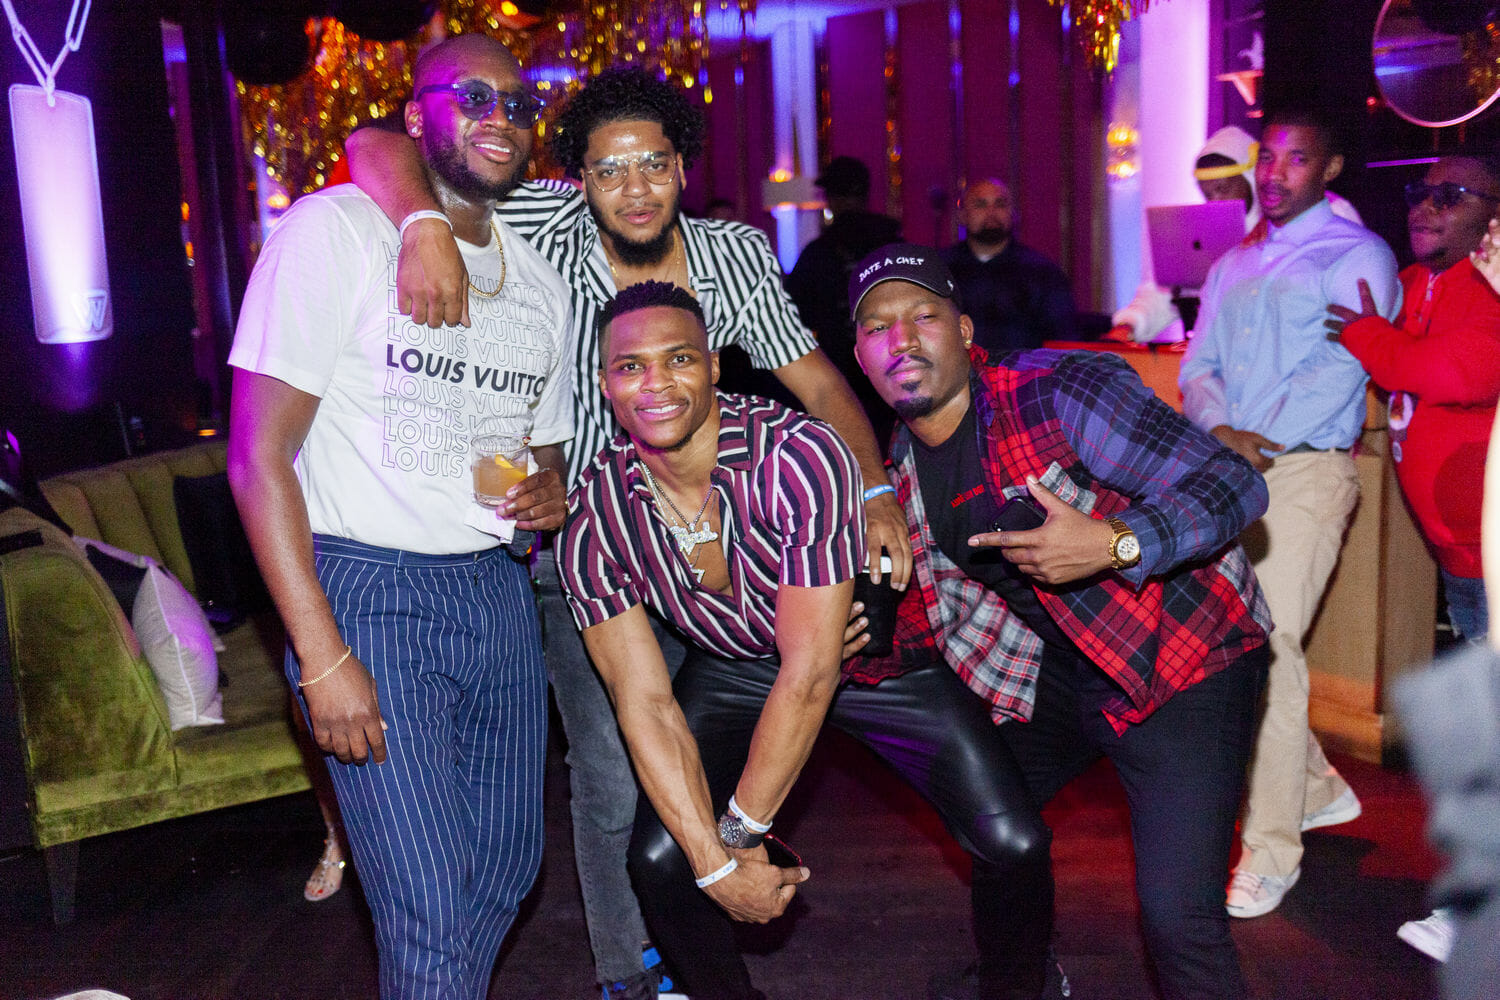 event-russell-westbrook-los-angeles-rw30th_134